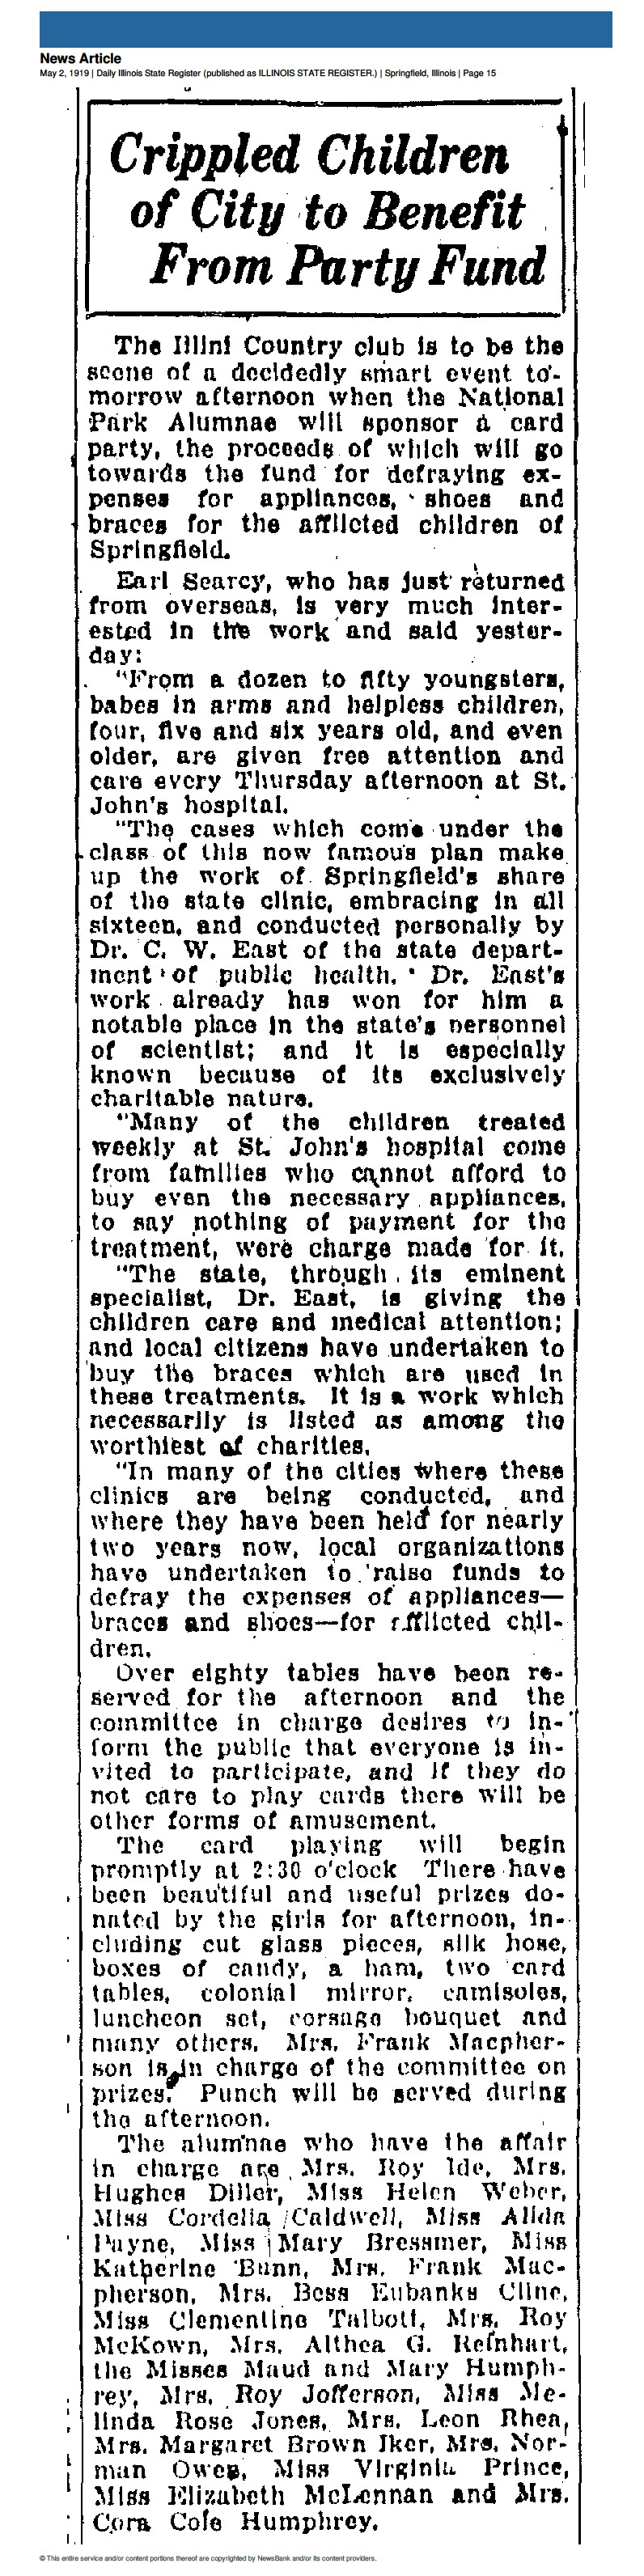 Crippled Children of City to Benefit - May 2, 1919 - IL St Register.jpg